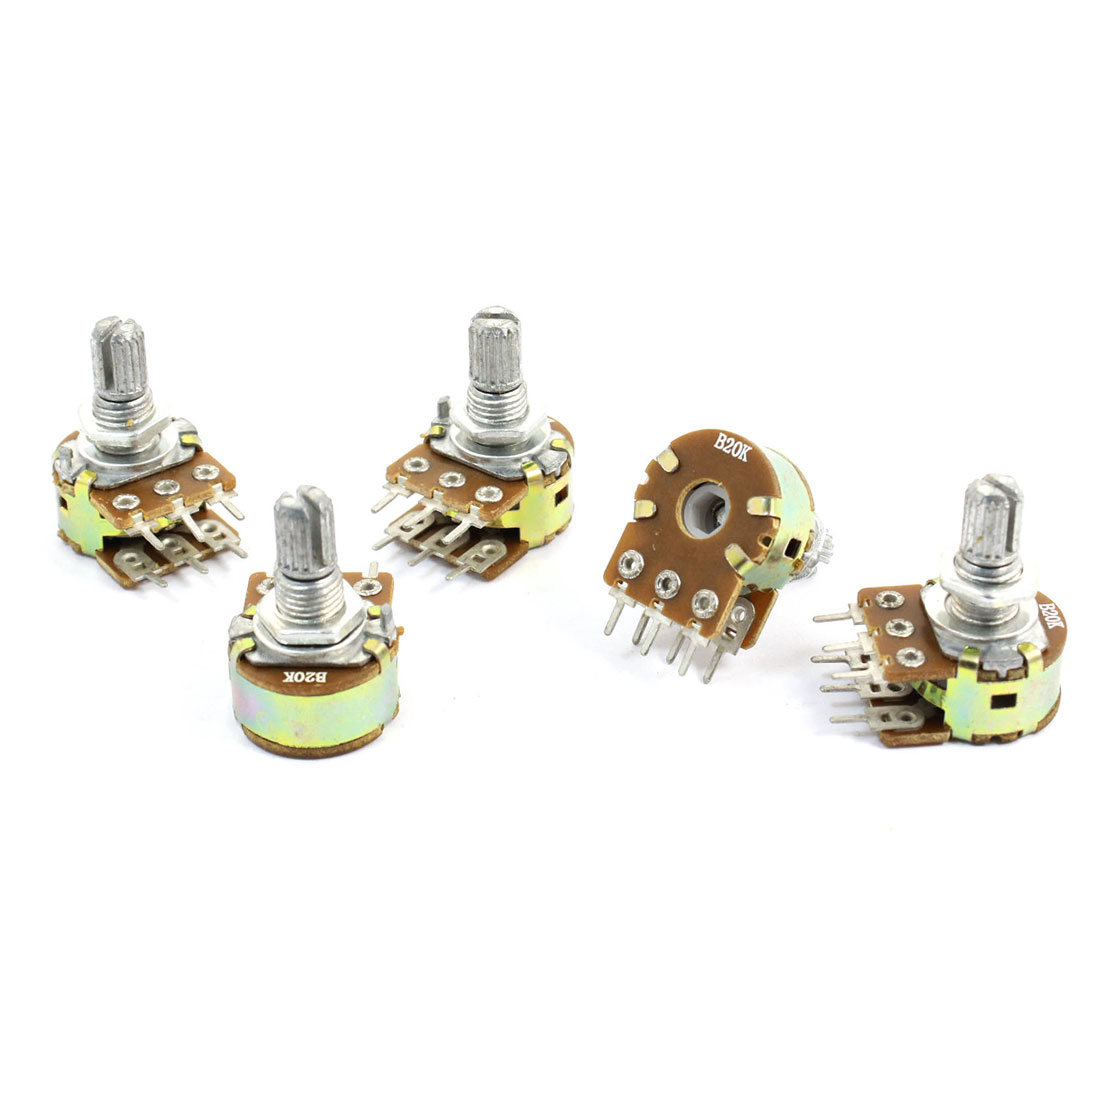 5 Pcs 20K Ohm Knurled Shaft Top Dual Linear Potentiometers AC 250V